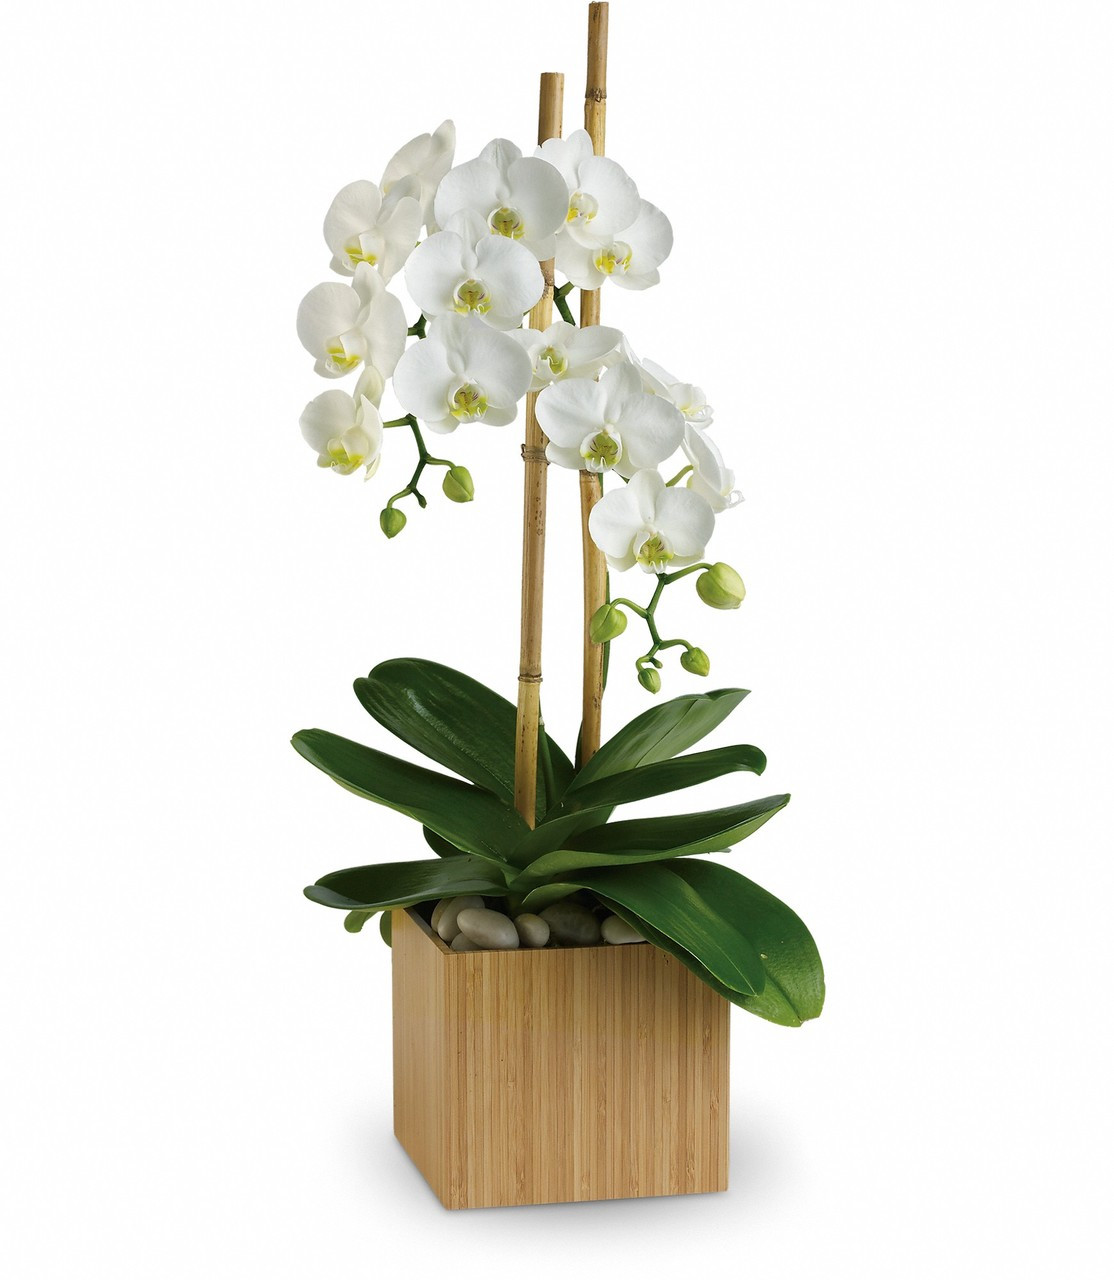 Beautiful orchid flower delivery in houston tx by enchanted florist elegant opulent orchid plant by enchanted florist tx orchid flower delivery in houston tx and izmirmasajfo